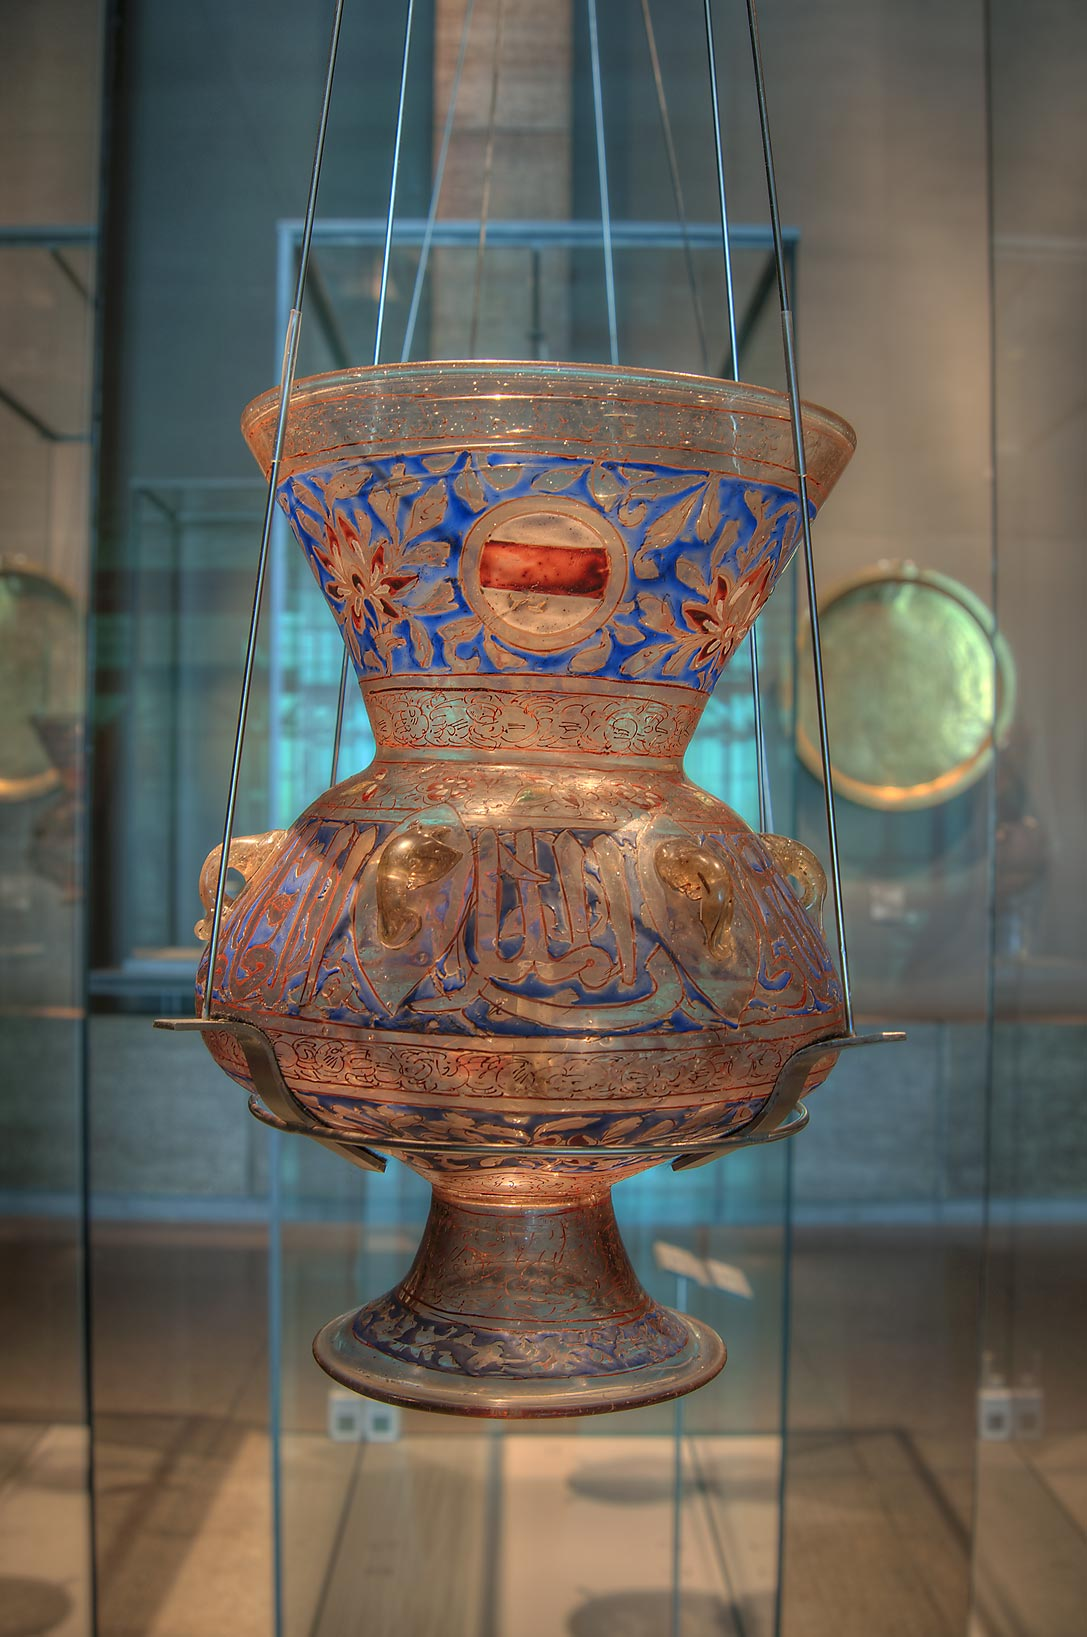 Mosque lamp with vitreous enamel on display in Museum of Islamic Art. Doha, Qatar